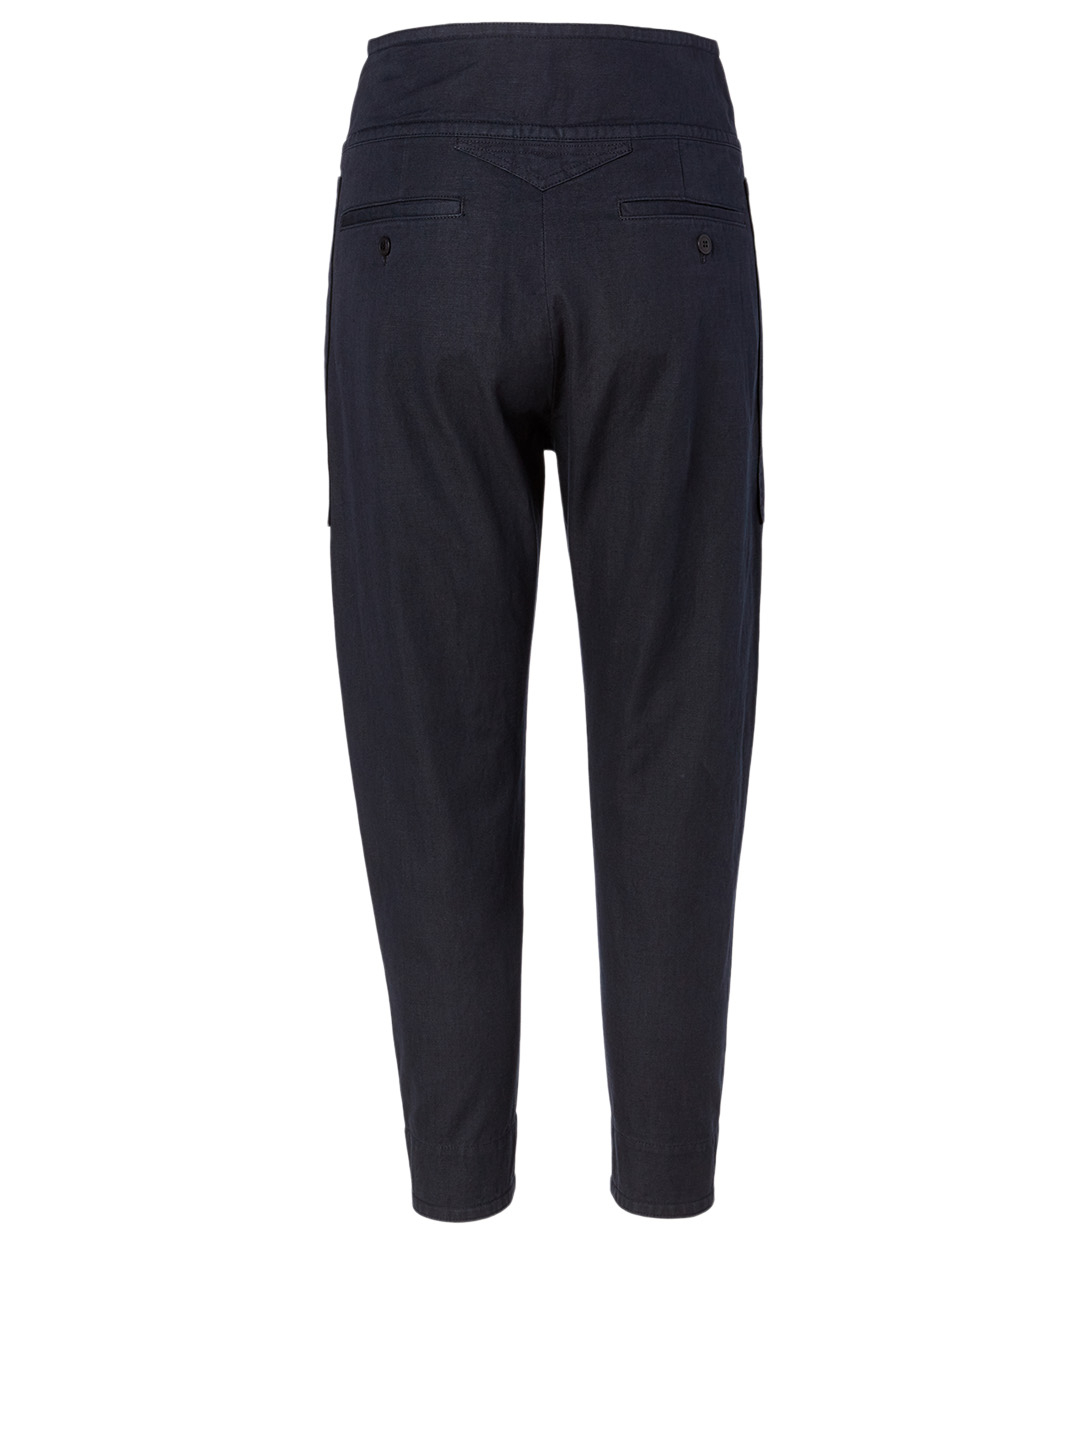 ISABEL MARANT ÉTOILE Raluni Cotton And Linen Pants Women's Black